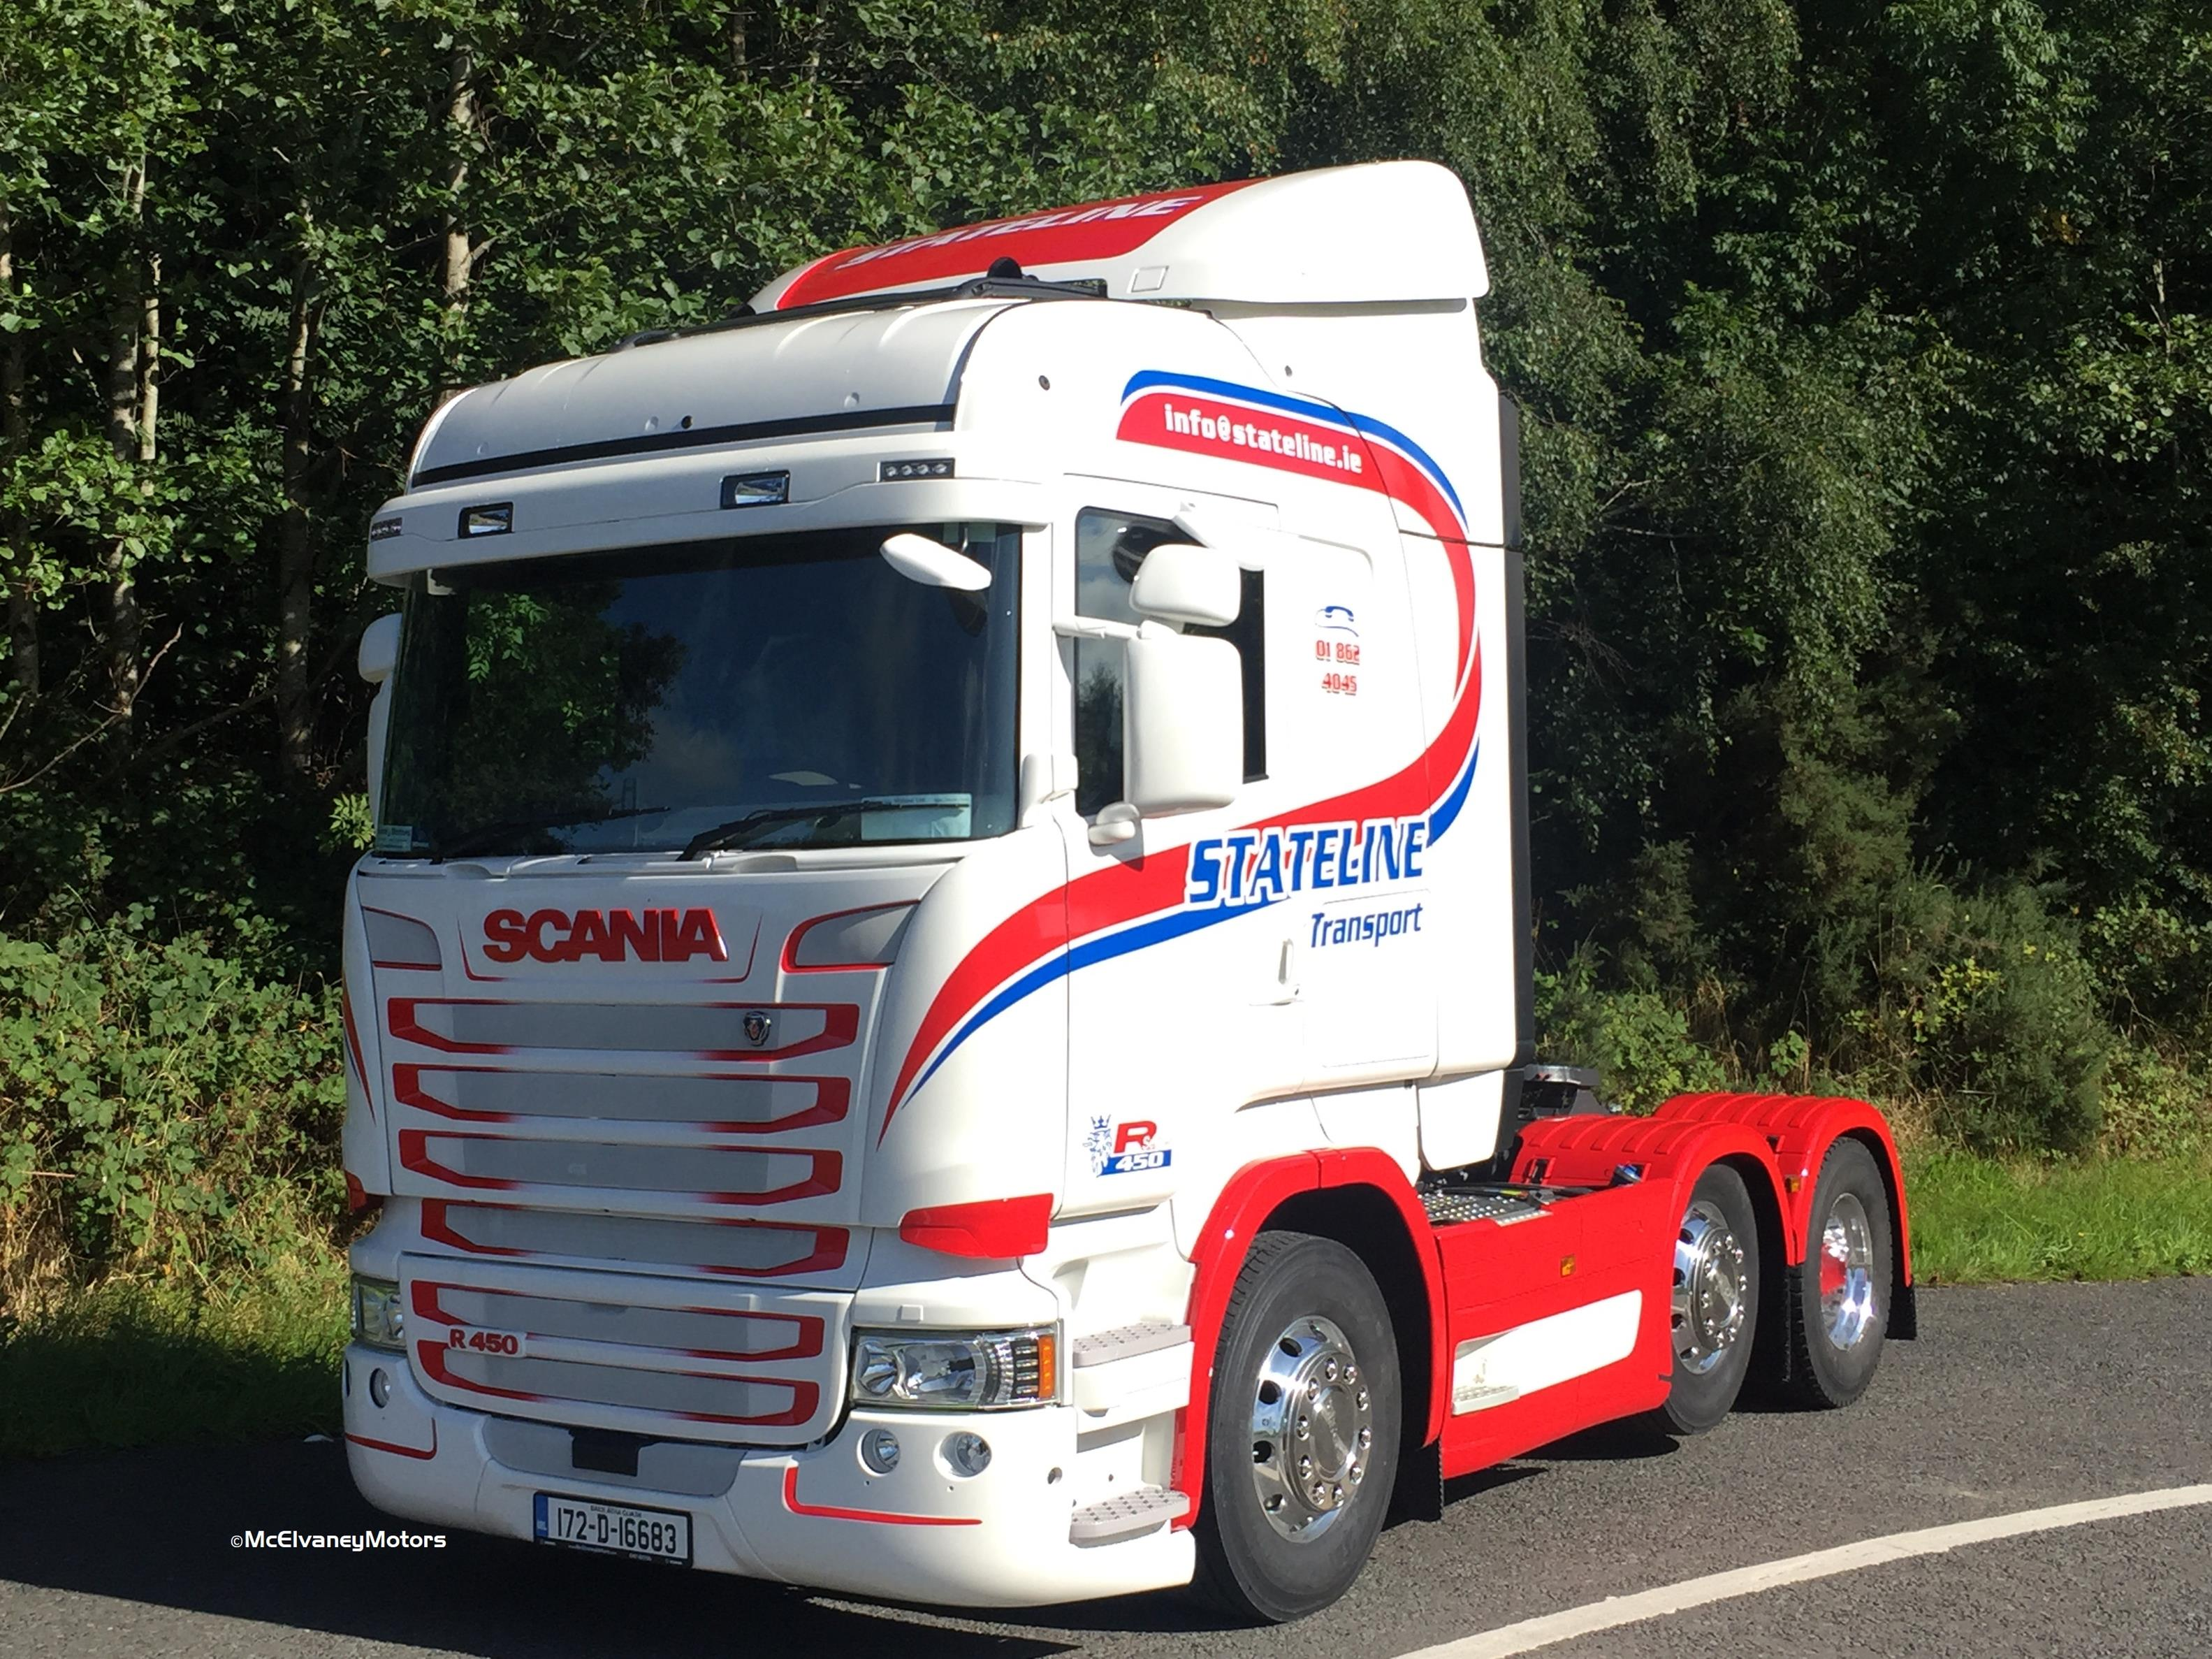 New Scania R450 for Stateline Transport